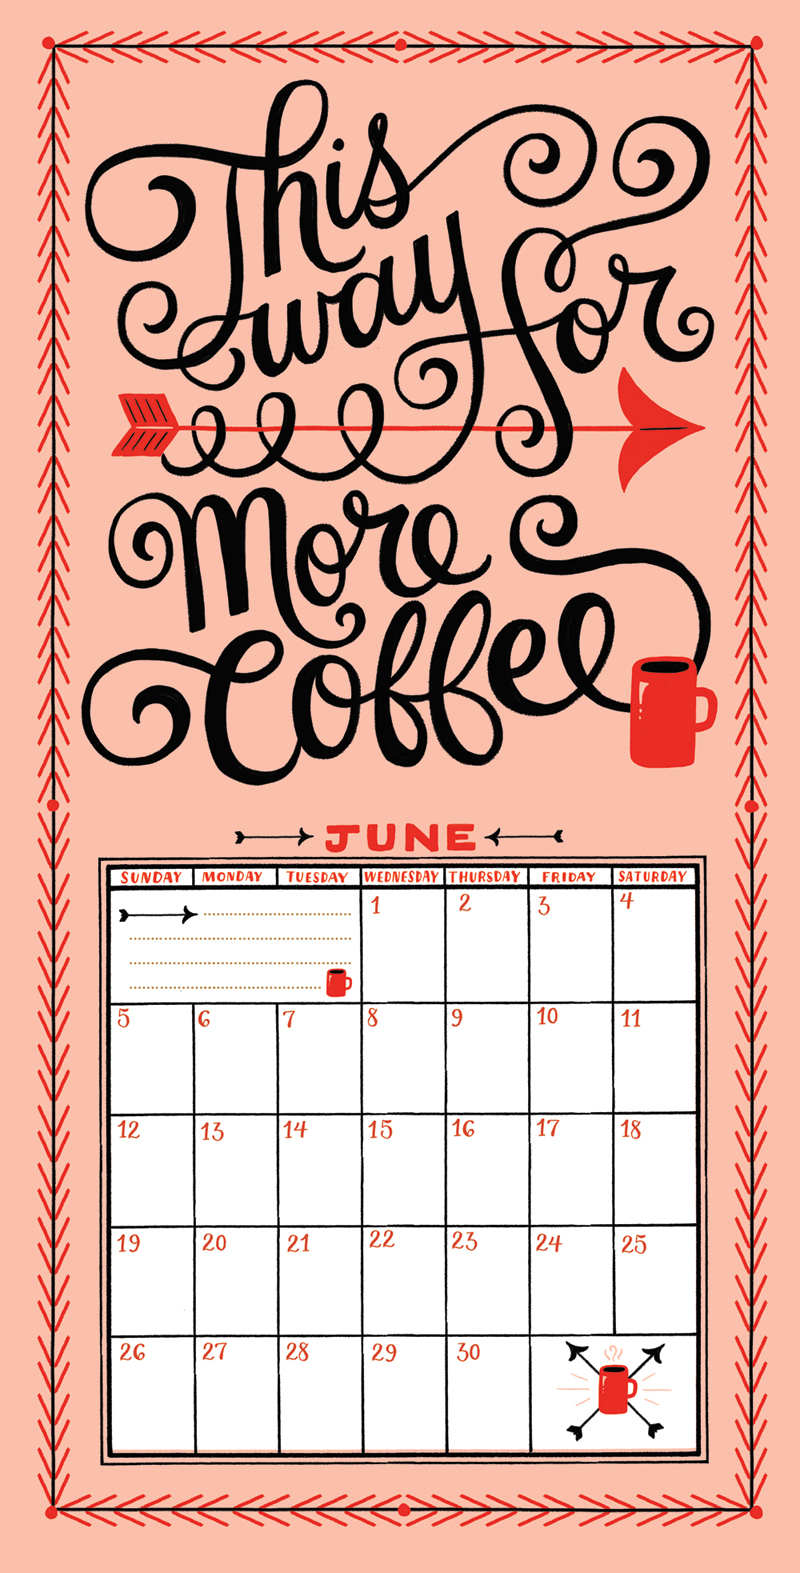 Freshly-Brewed-Coffee-Mini-Calendar-Mary-Kate-03